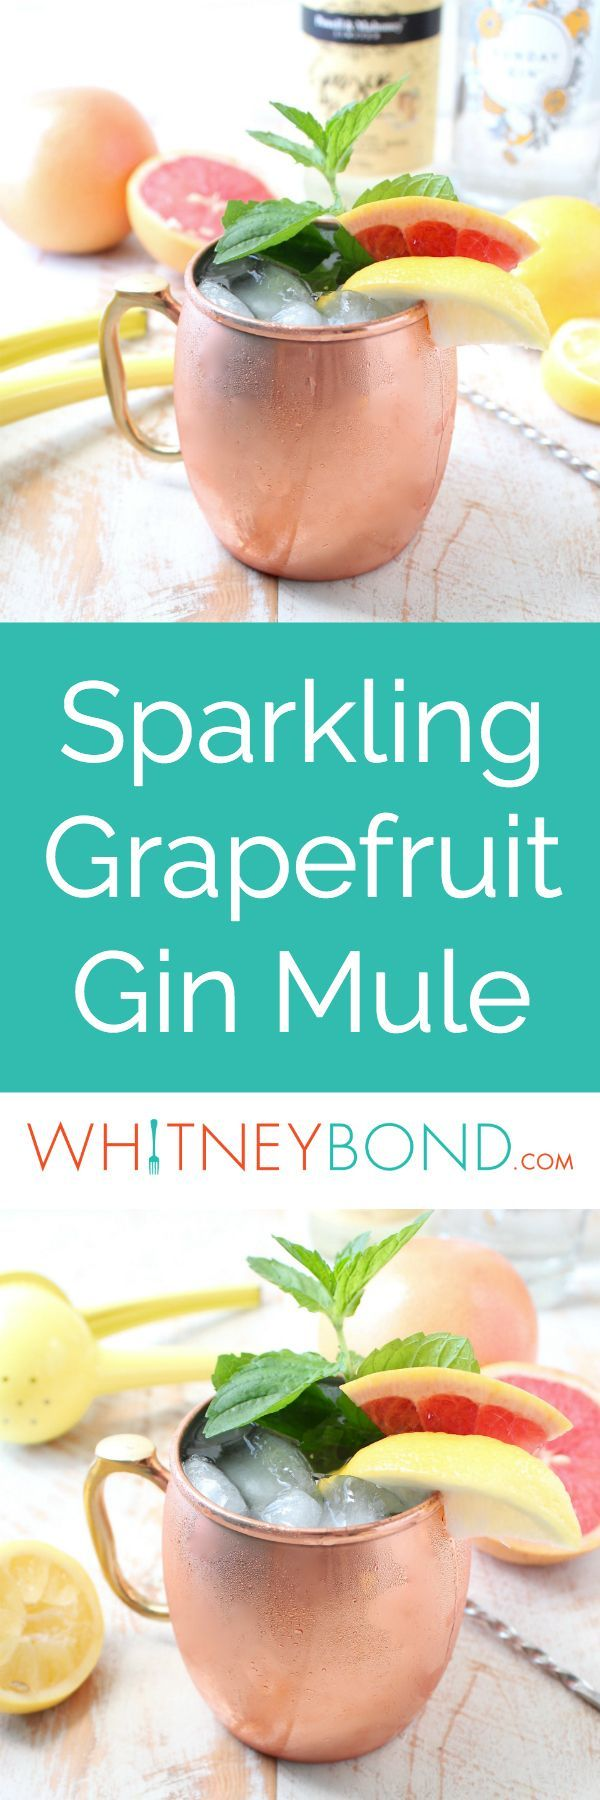 This delicious twist on a gin mule combines tart grapefruit juice with sweet sparkling wine for a refreshing cocktail that's also so easy to make! Pick up a couple of Moscow Mule Mugs at @worldmarket to make this cocktail at home! #WorldMarketTribe